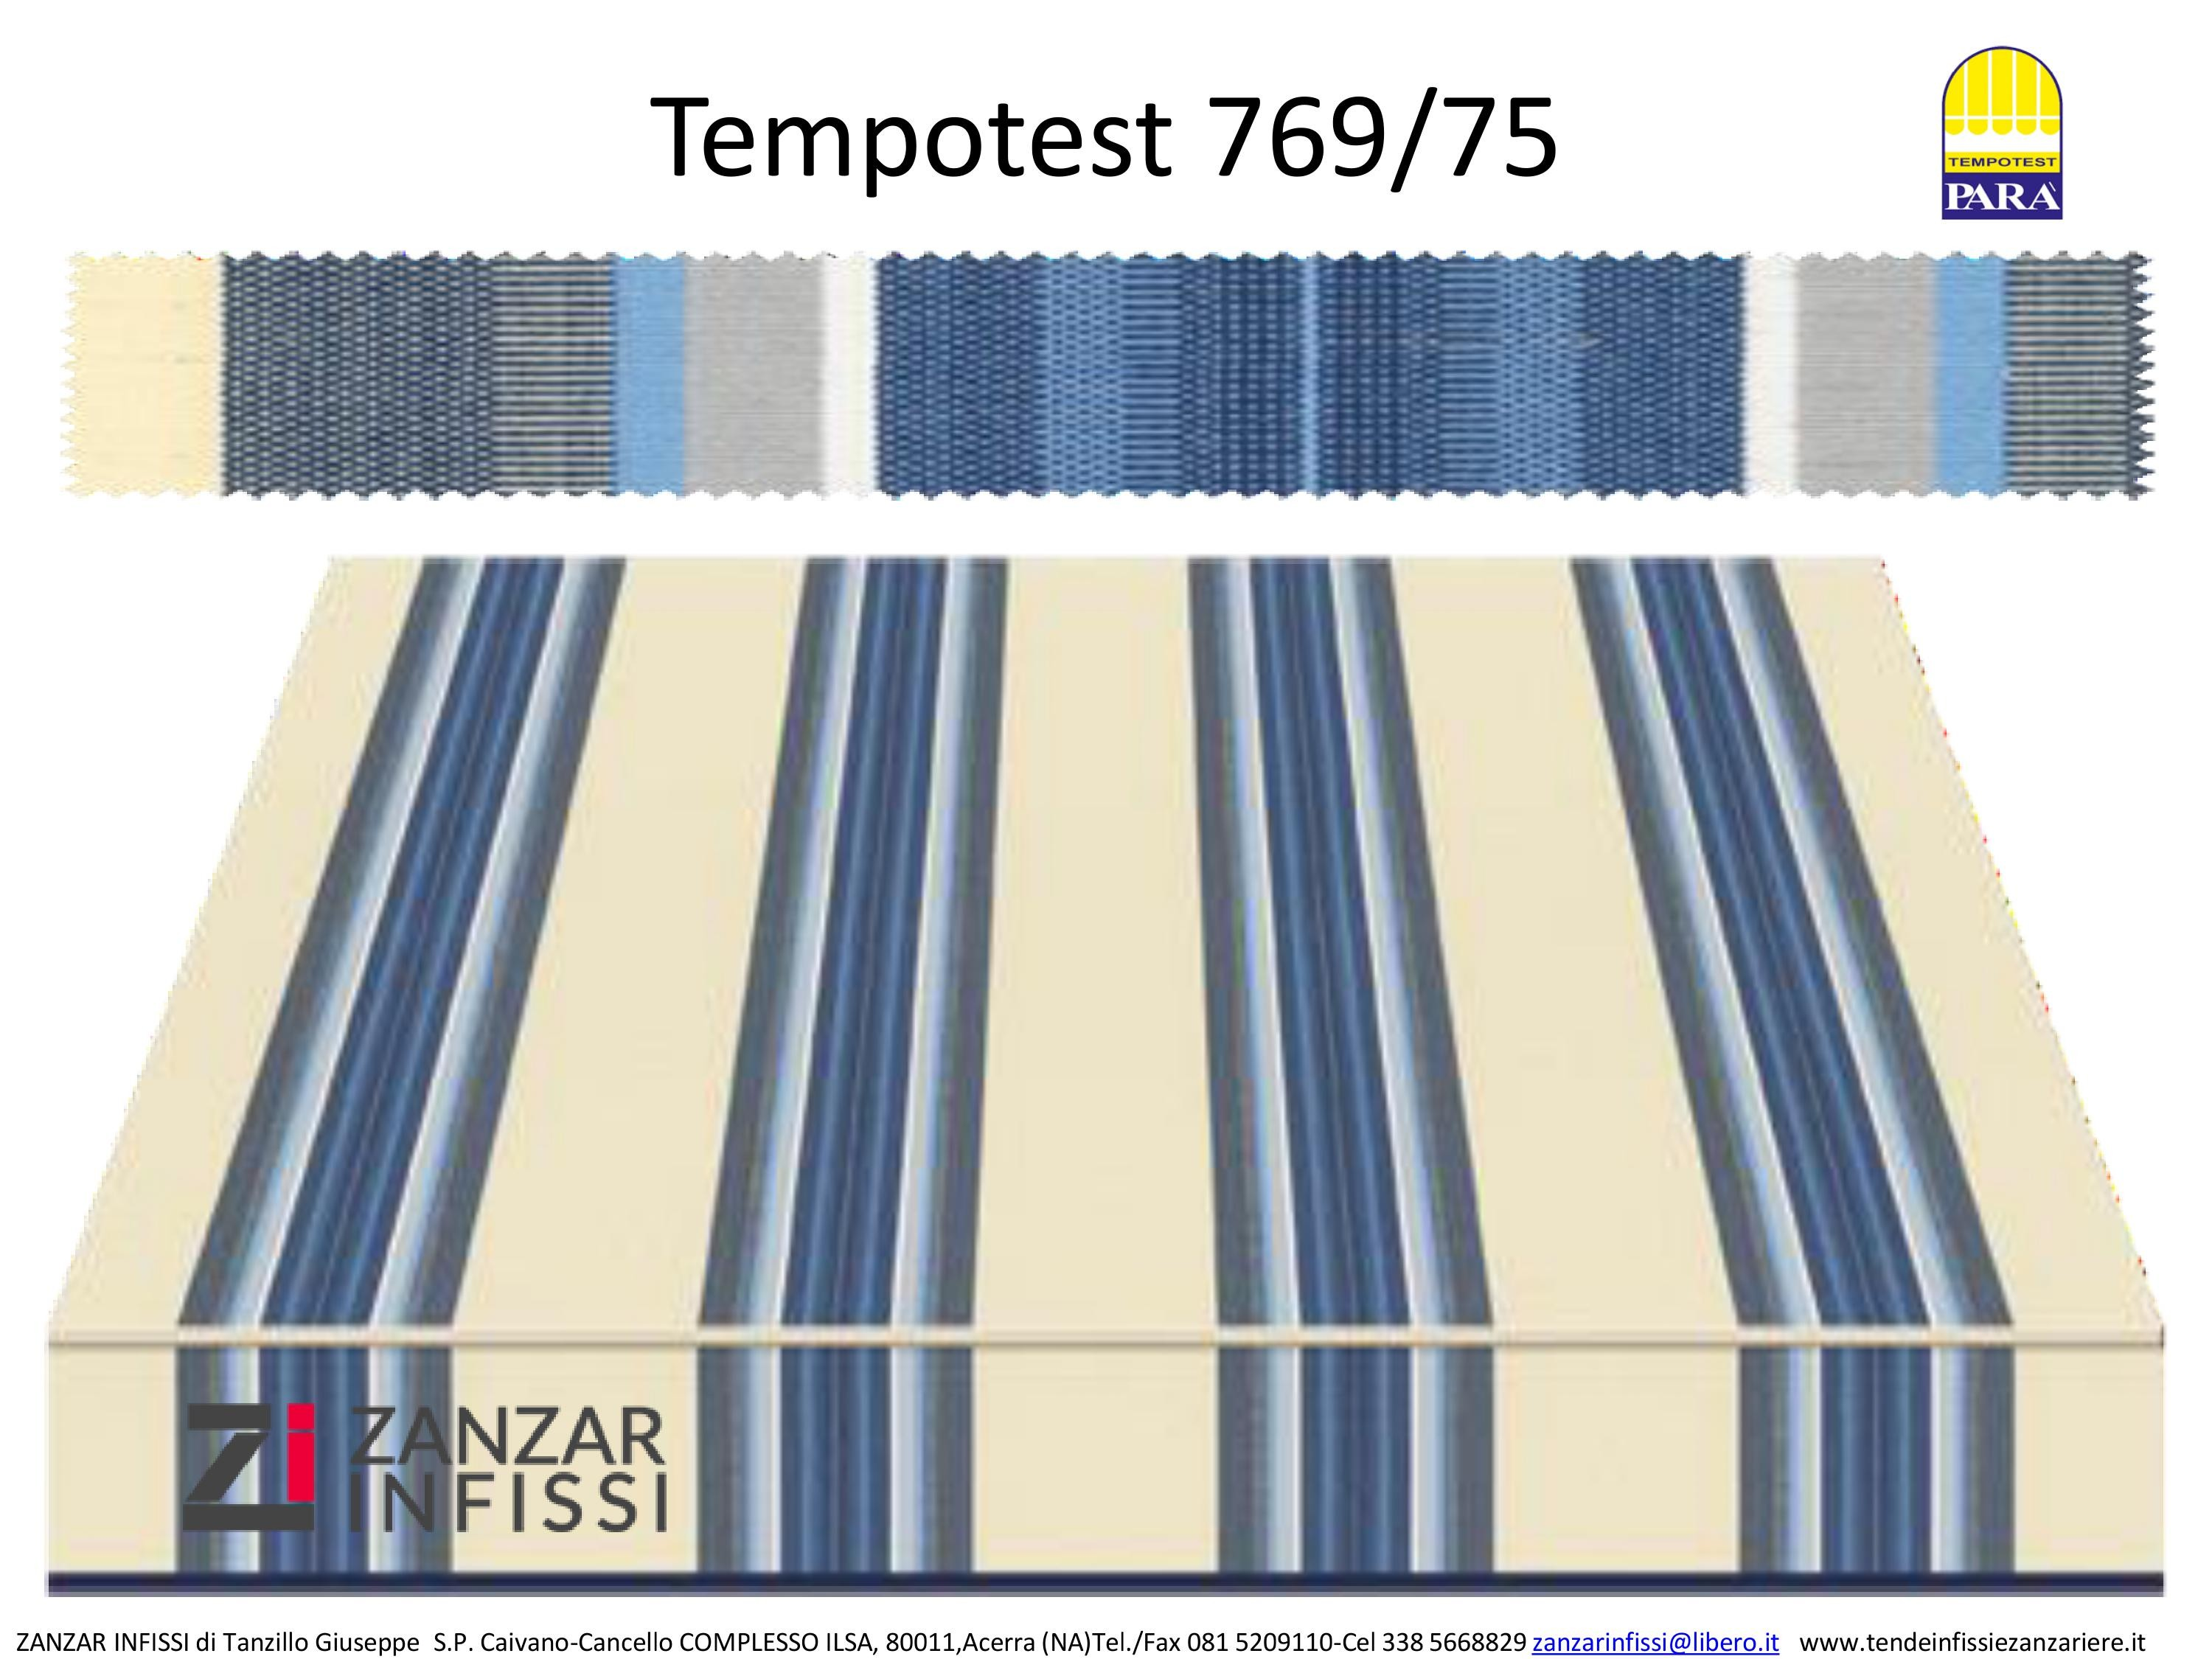 Tempotest 769/75